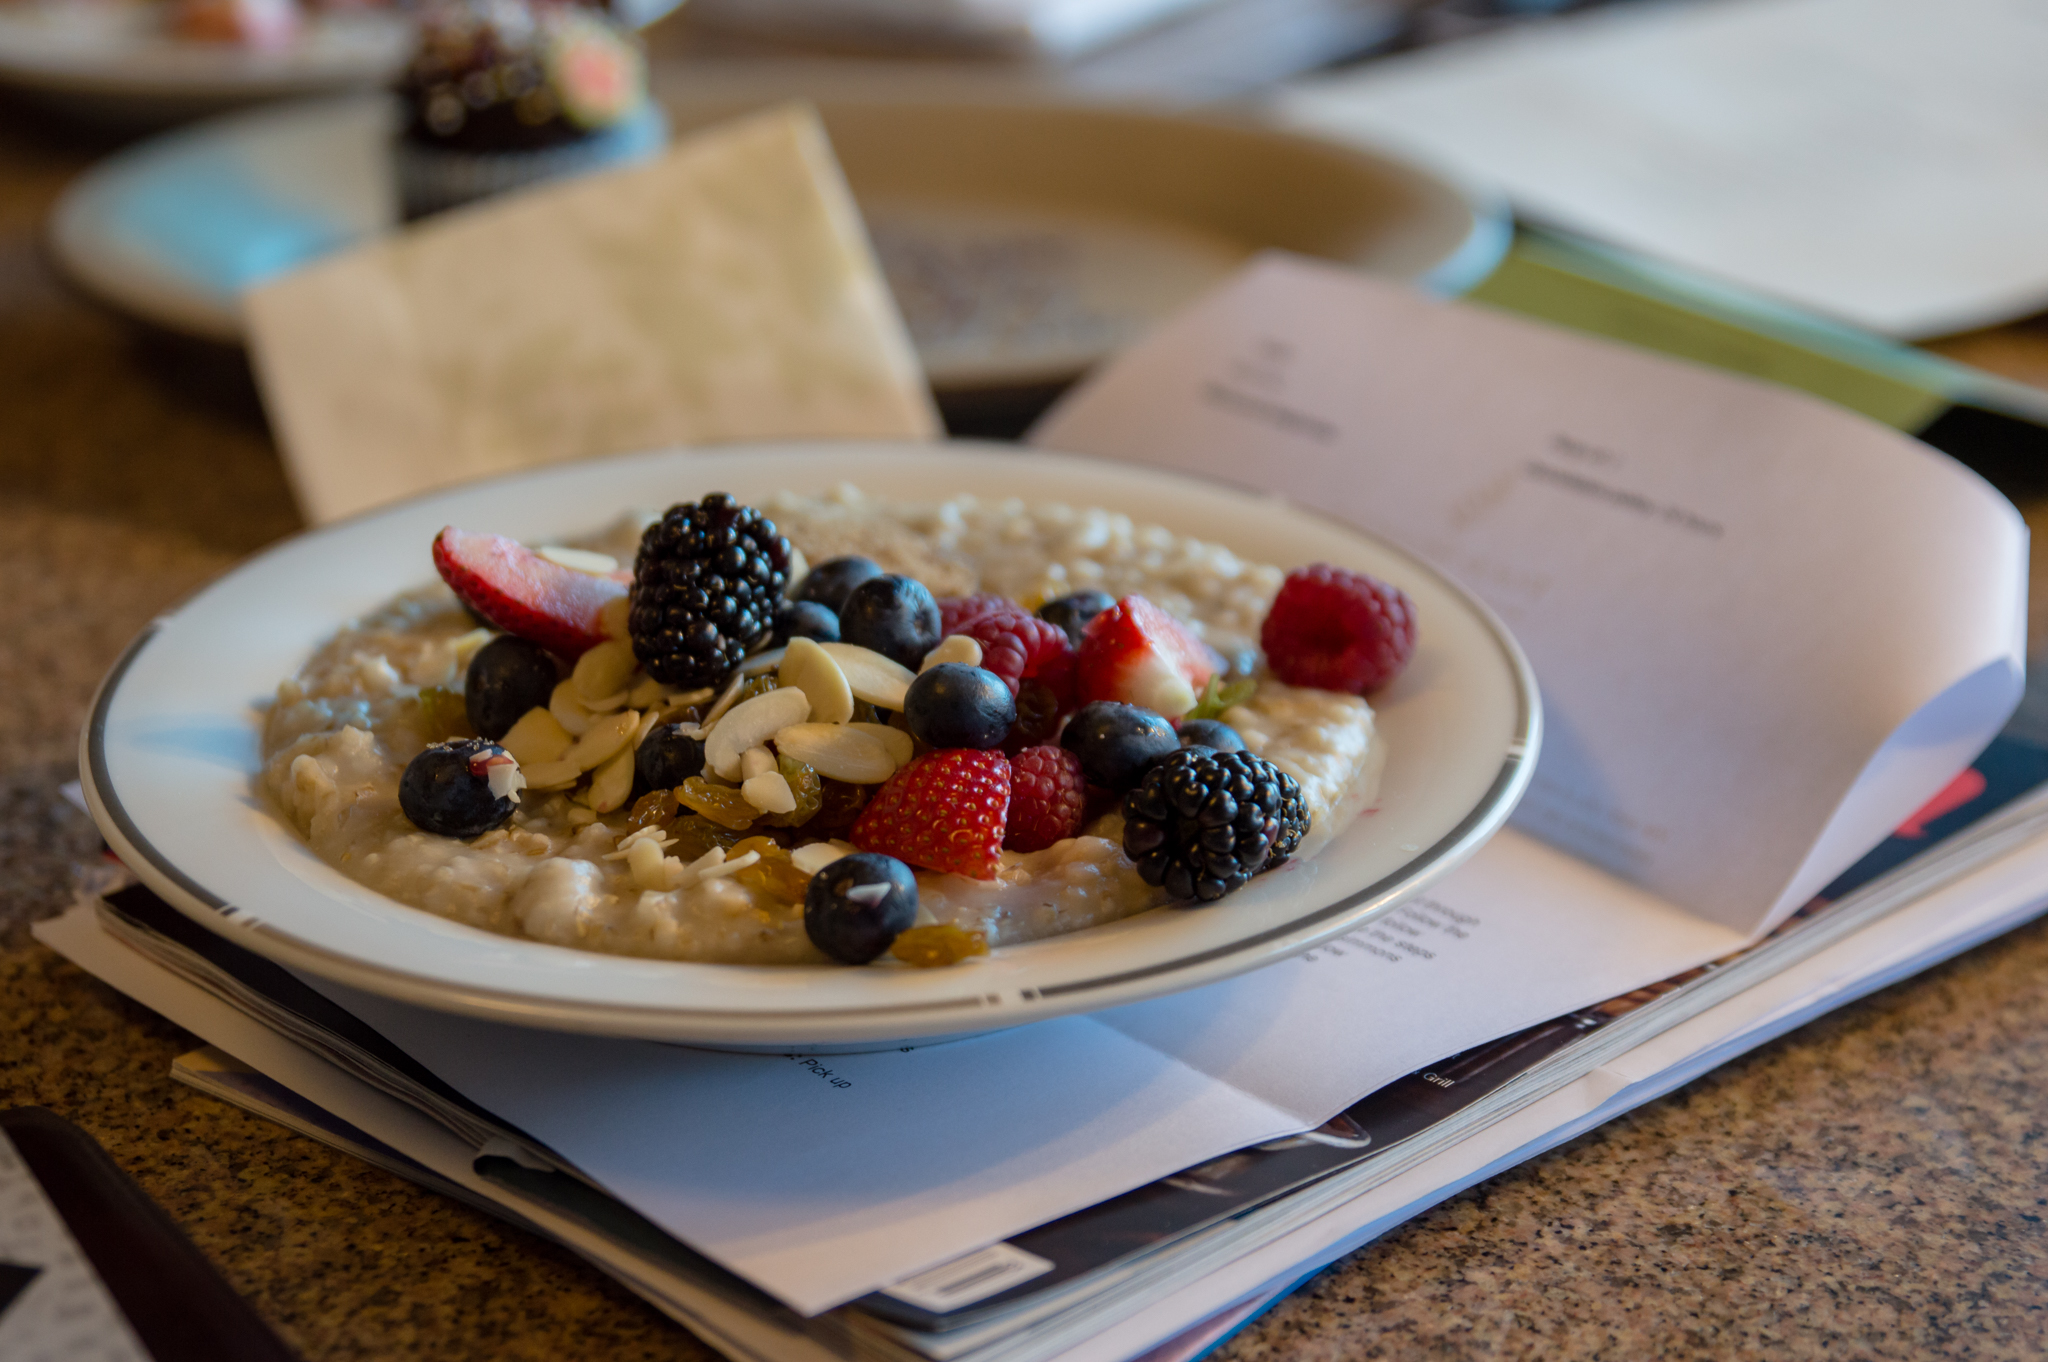 A bowl of oatmeal with slivered almonds, please.